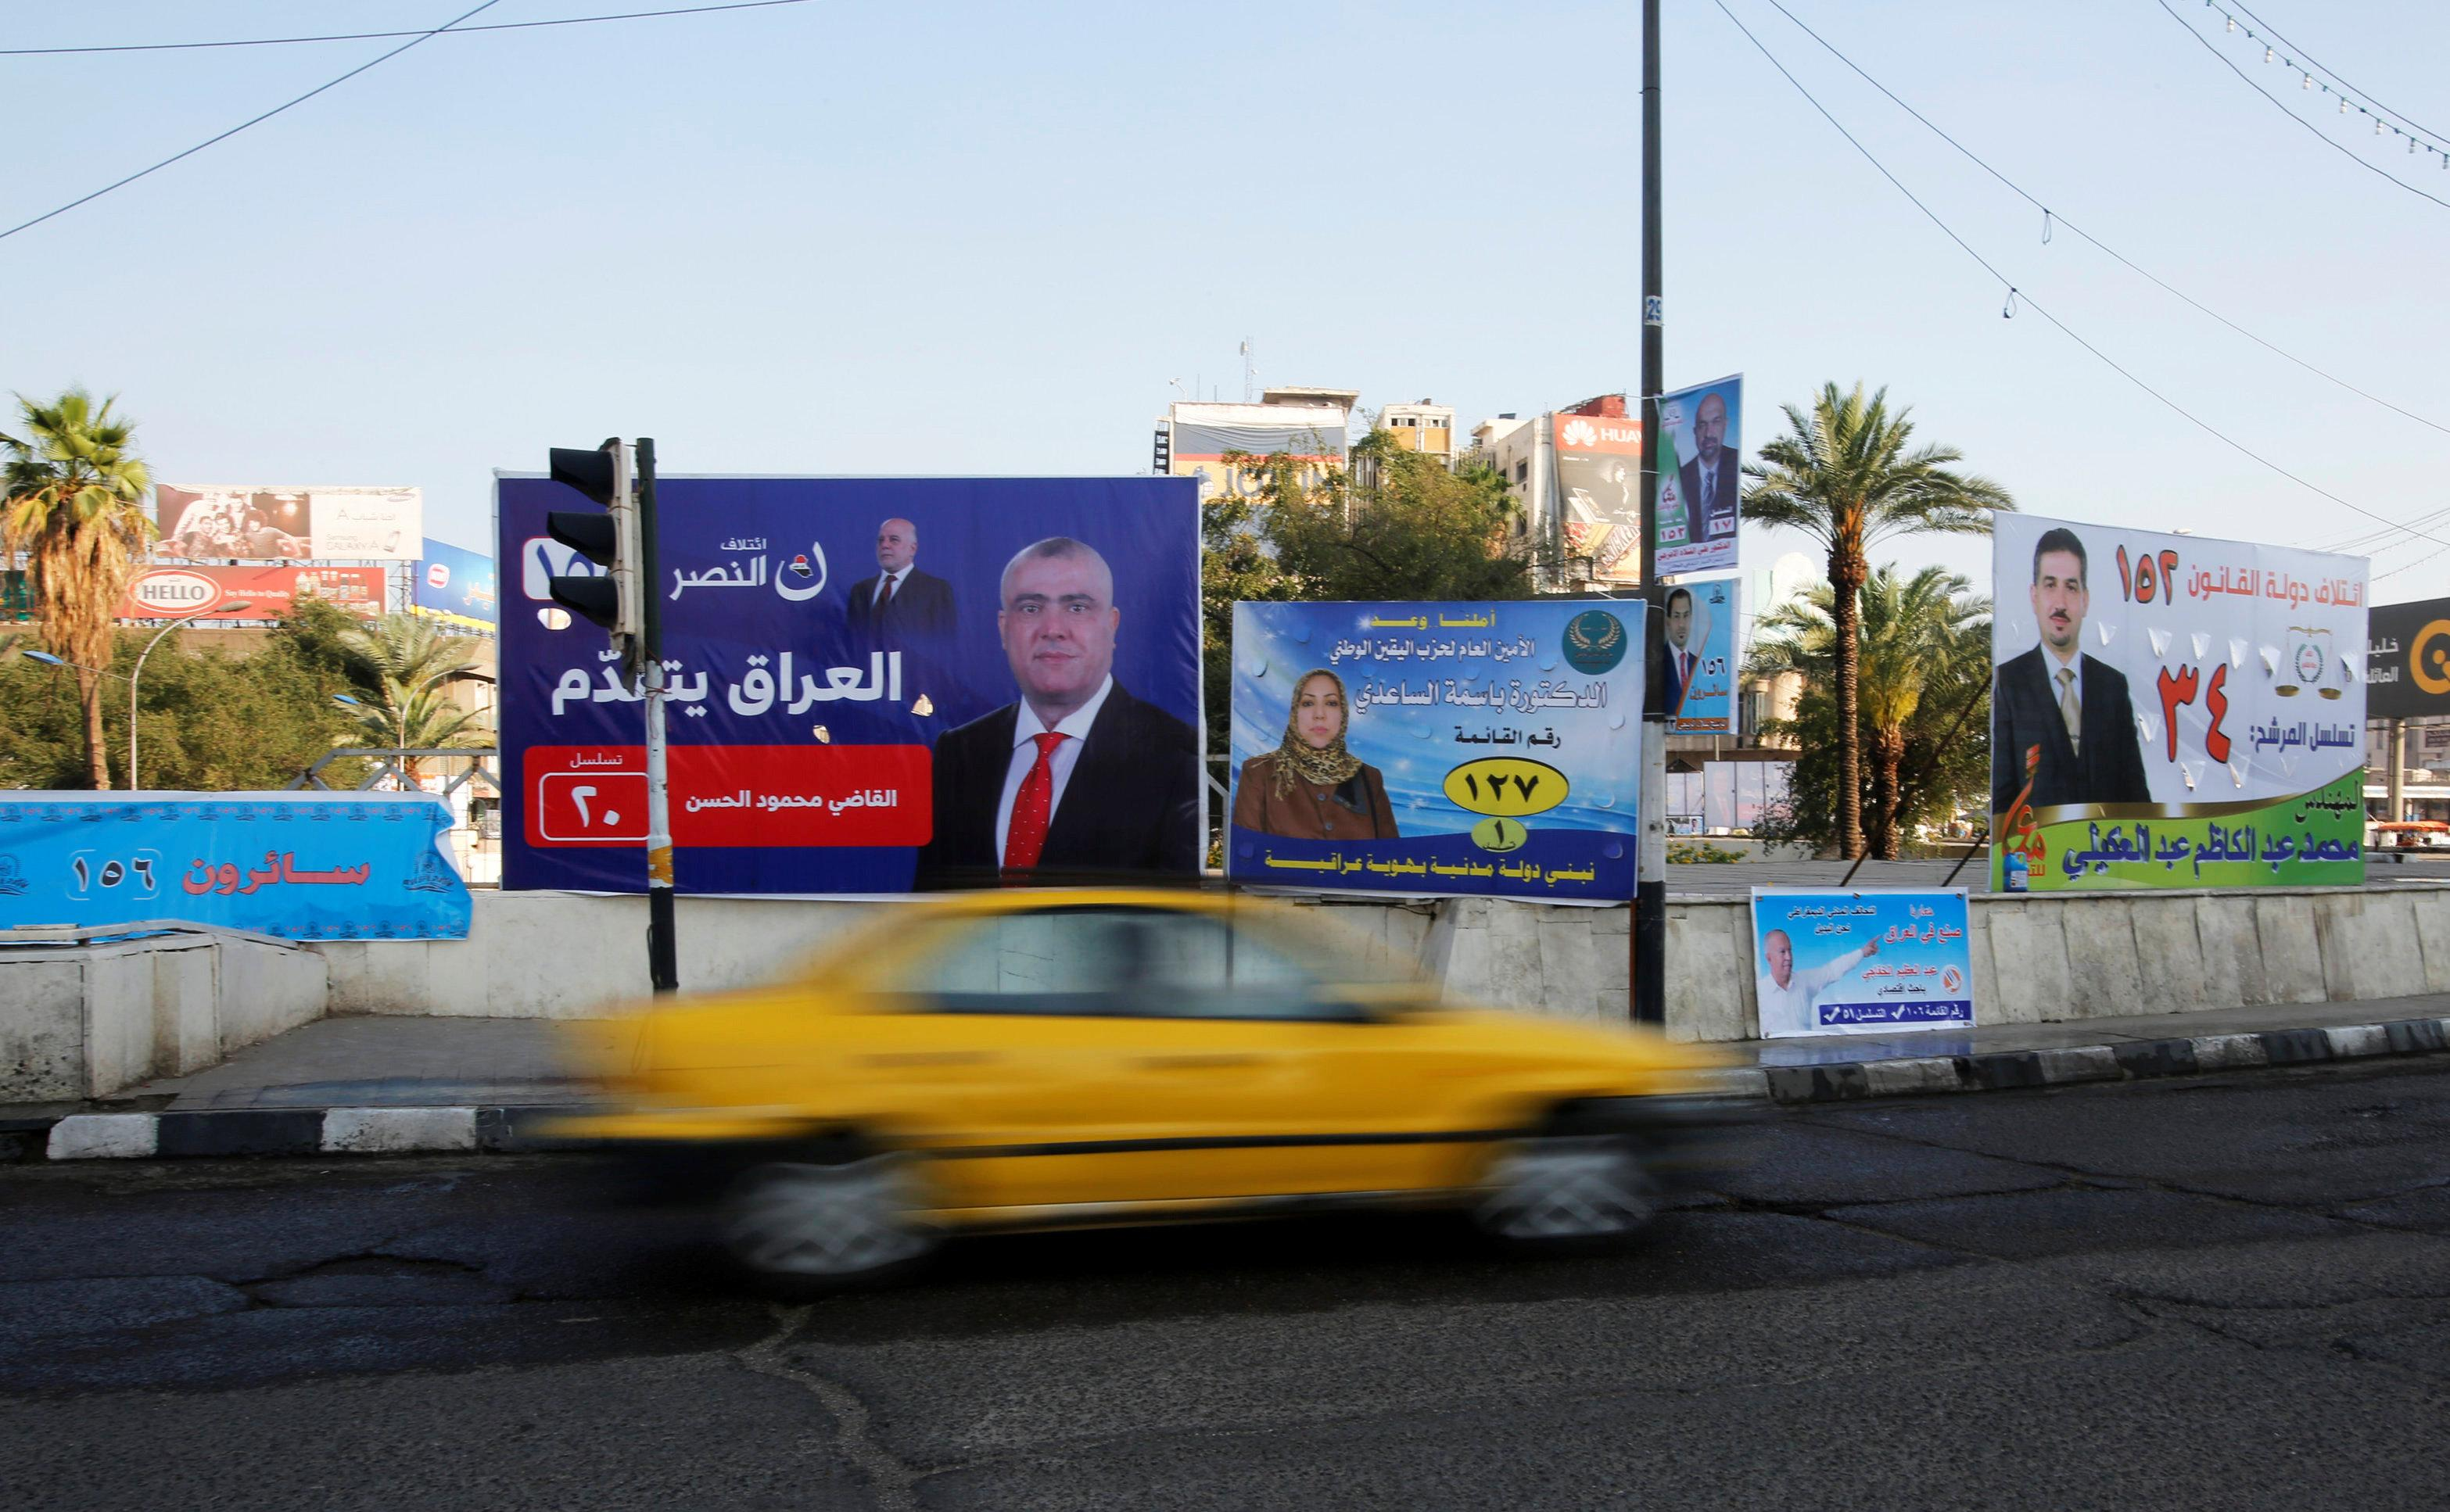 Islamic State threatens polling station attacks ahead of Iraq vote